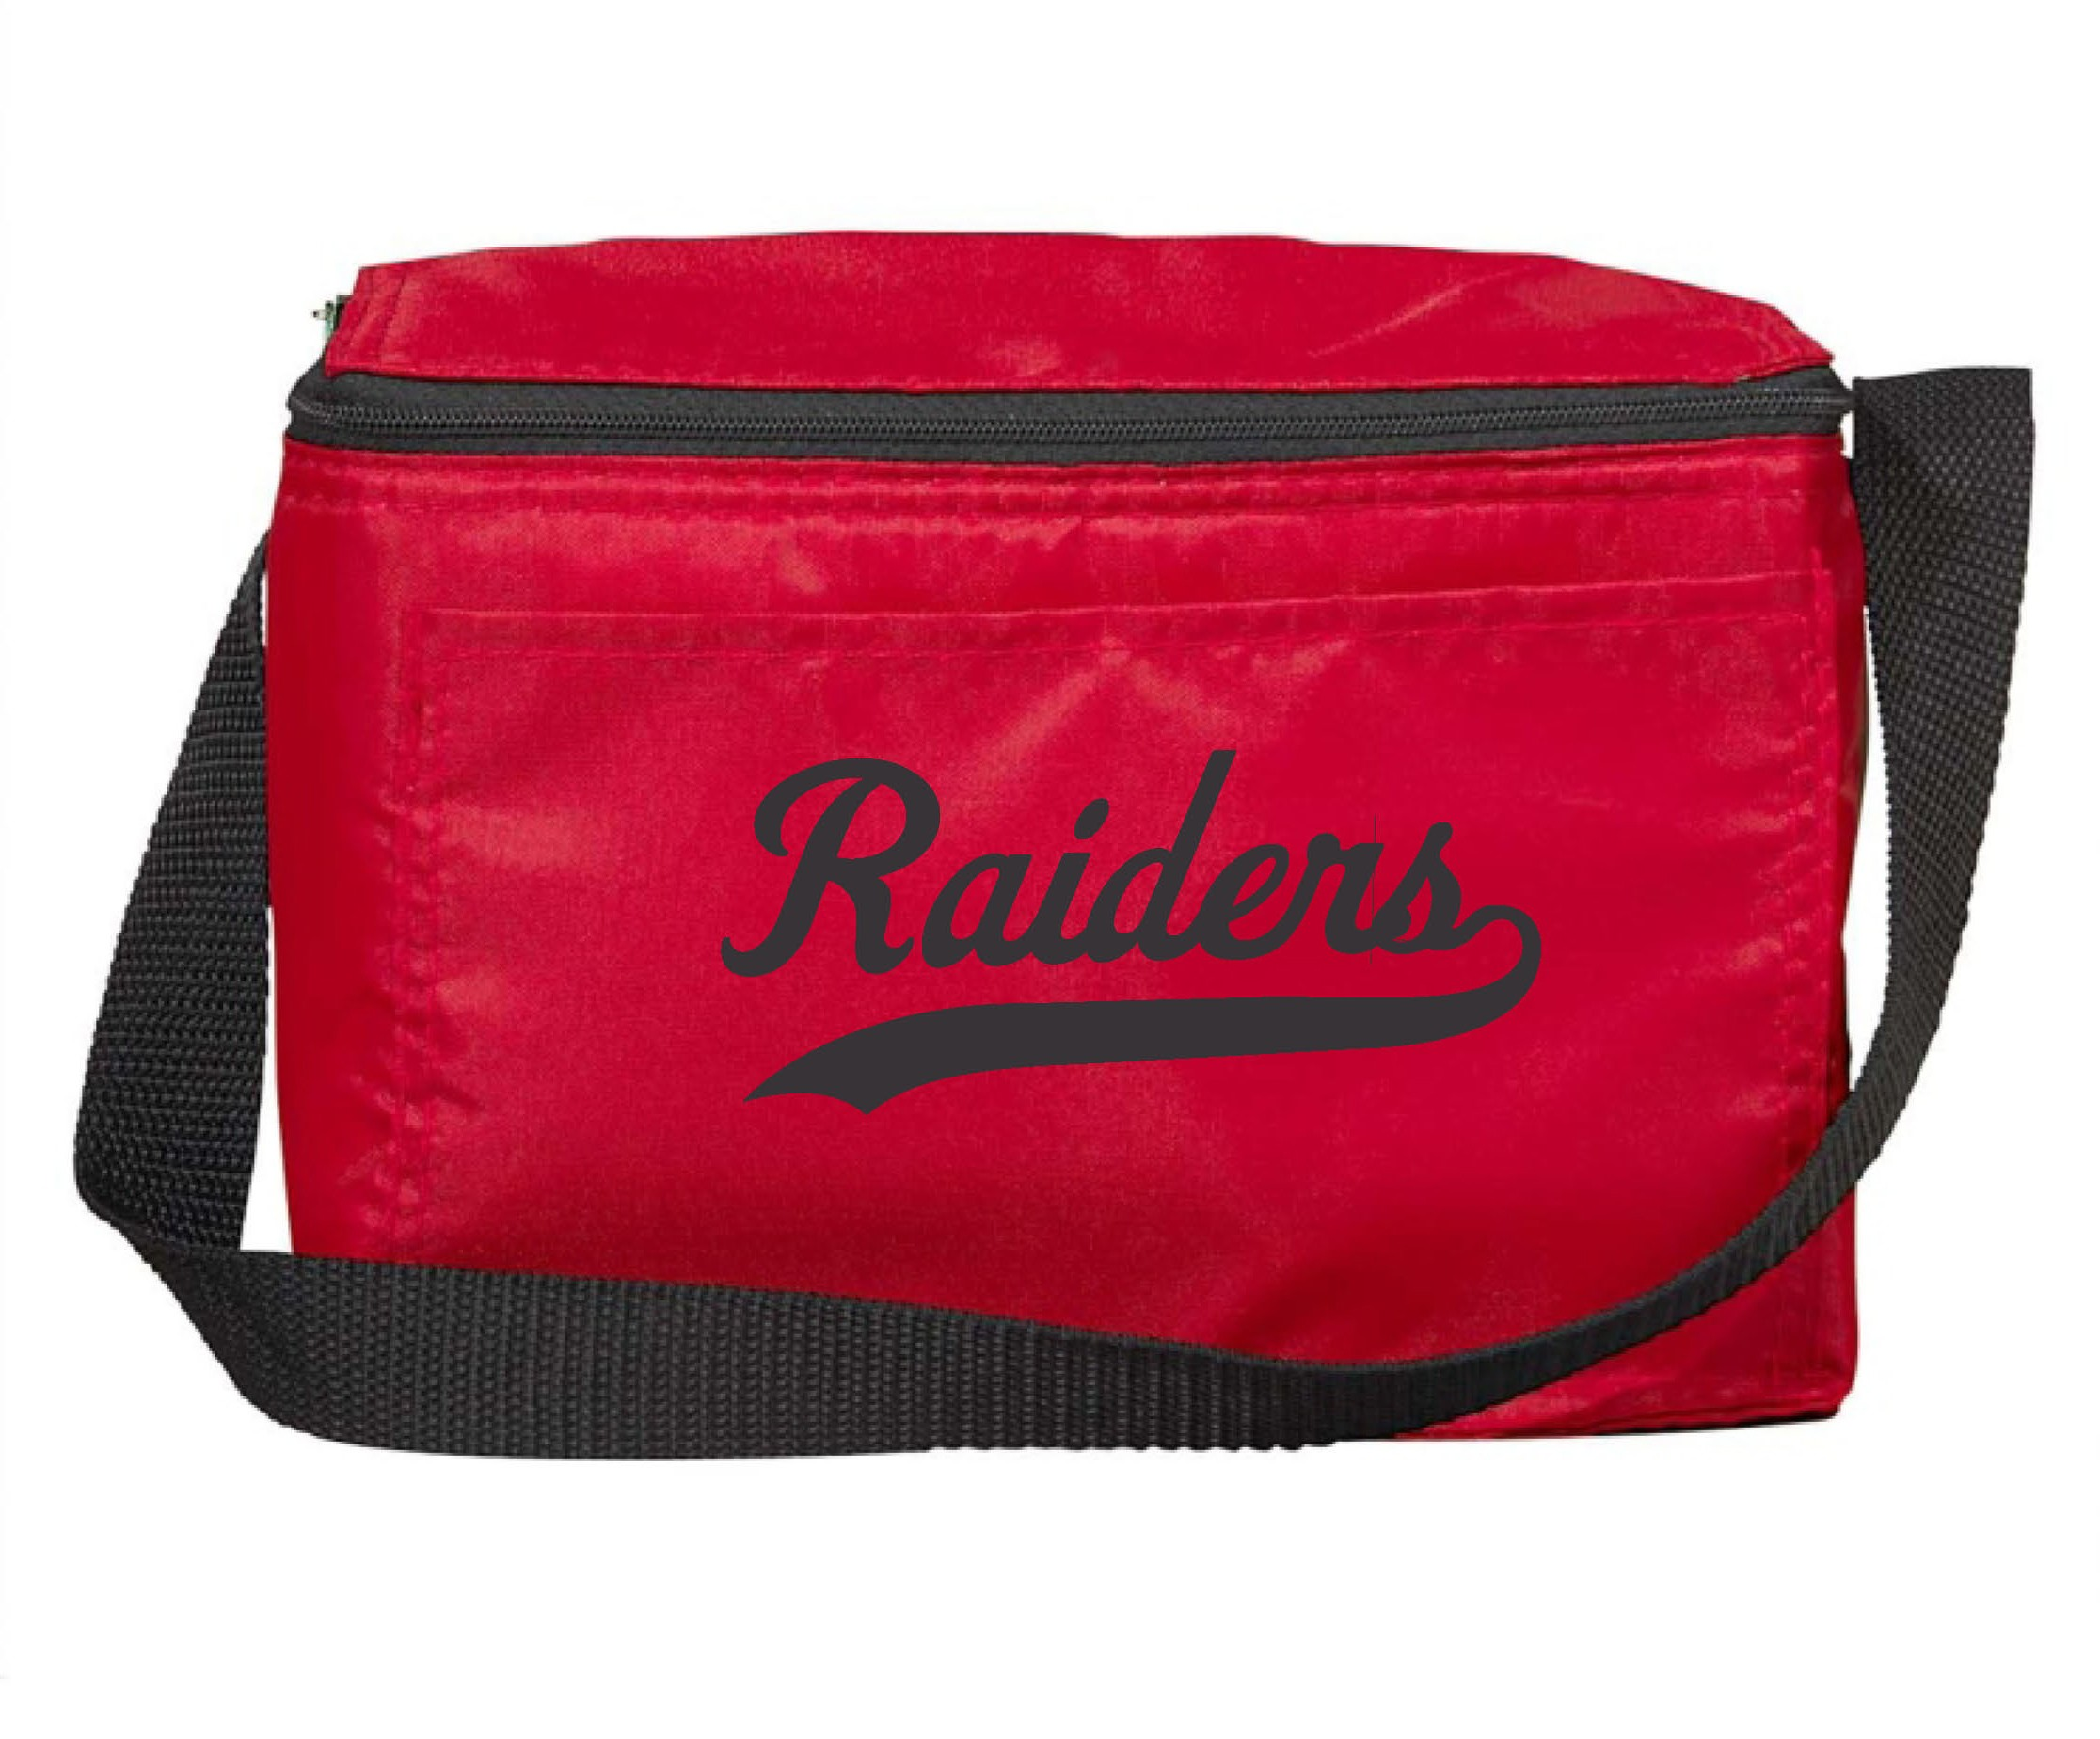 Raiders Ultraclub Insulated Lunch Cooler